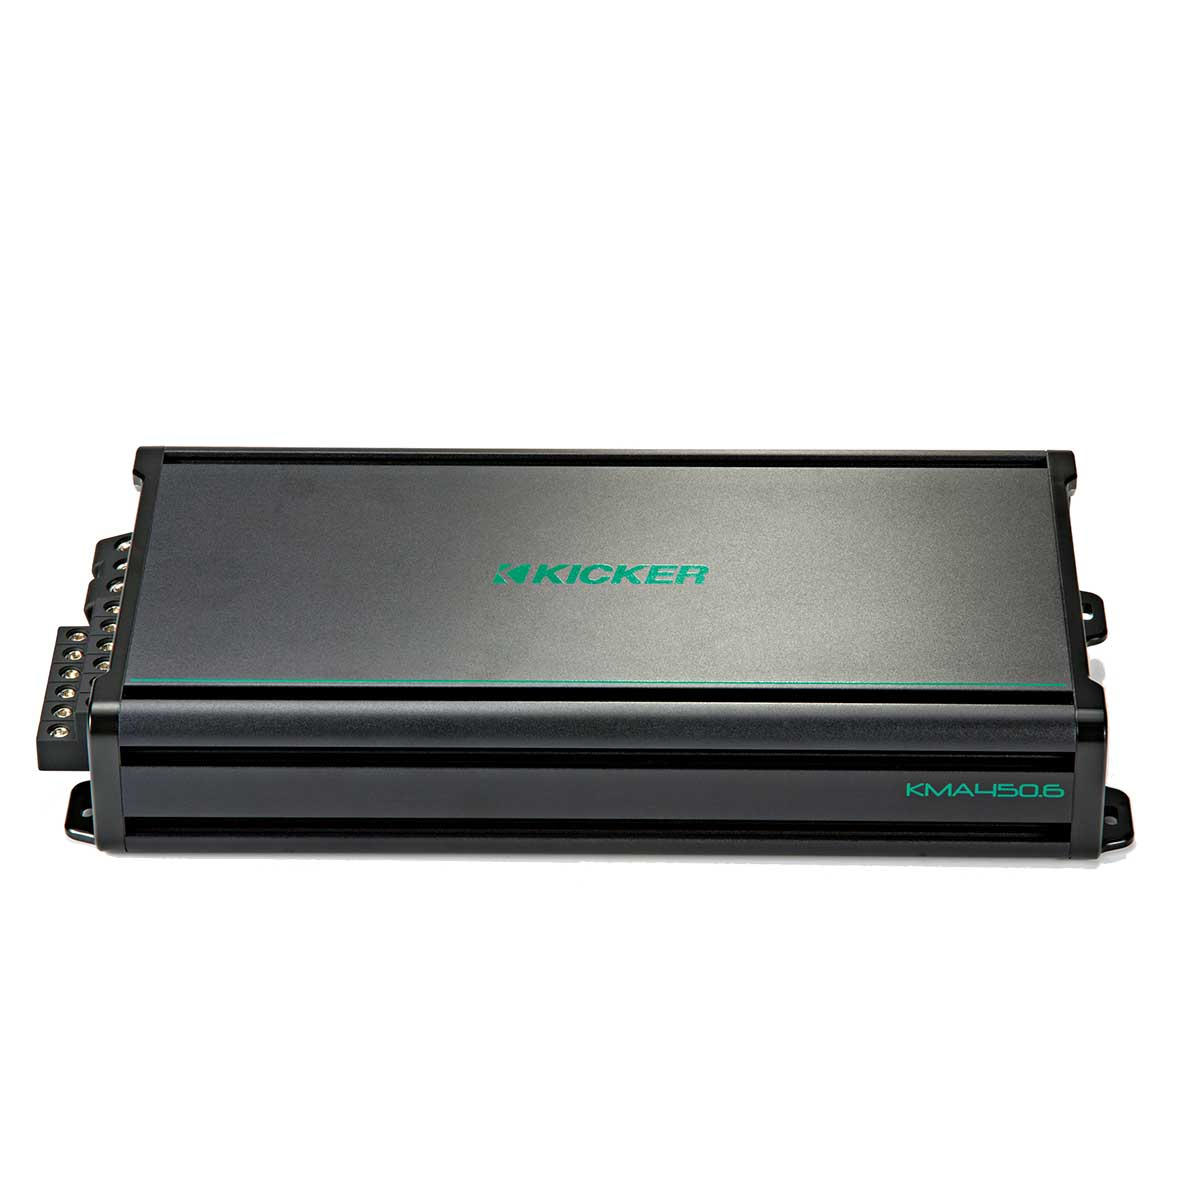 Kicker KMA450.6 450 Watt 6 Channel Marine Amplifier